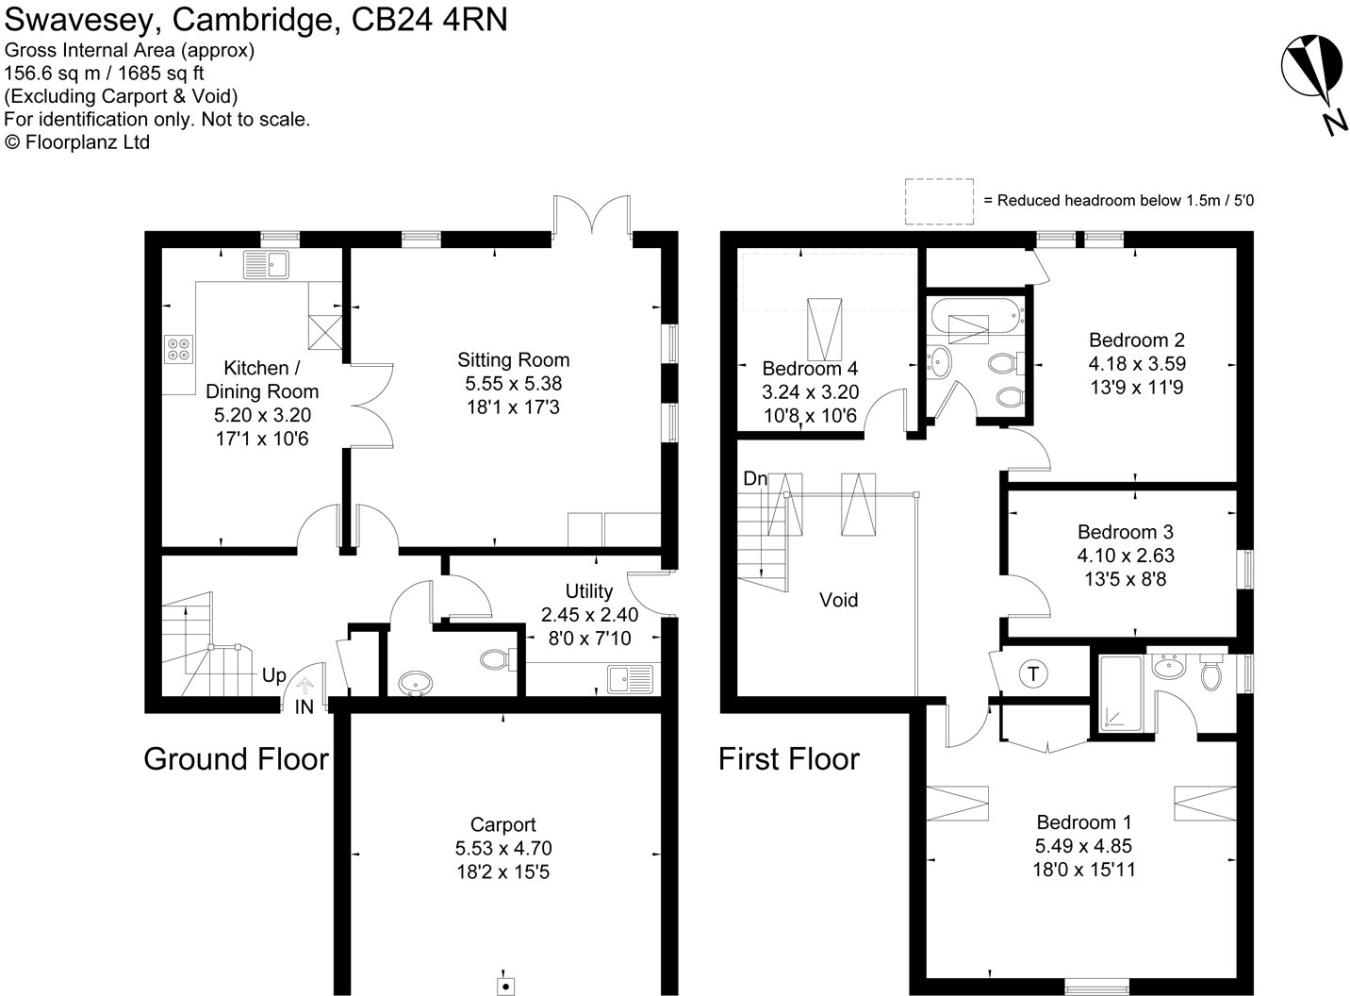 4 Bedroom House For Sale In The Grain Store Swan Court Middle Attic Room 2 Wiring Diagram Watch Swavesey Cambridge Cb24